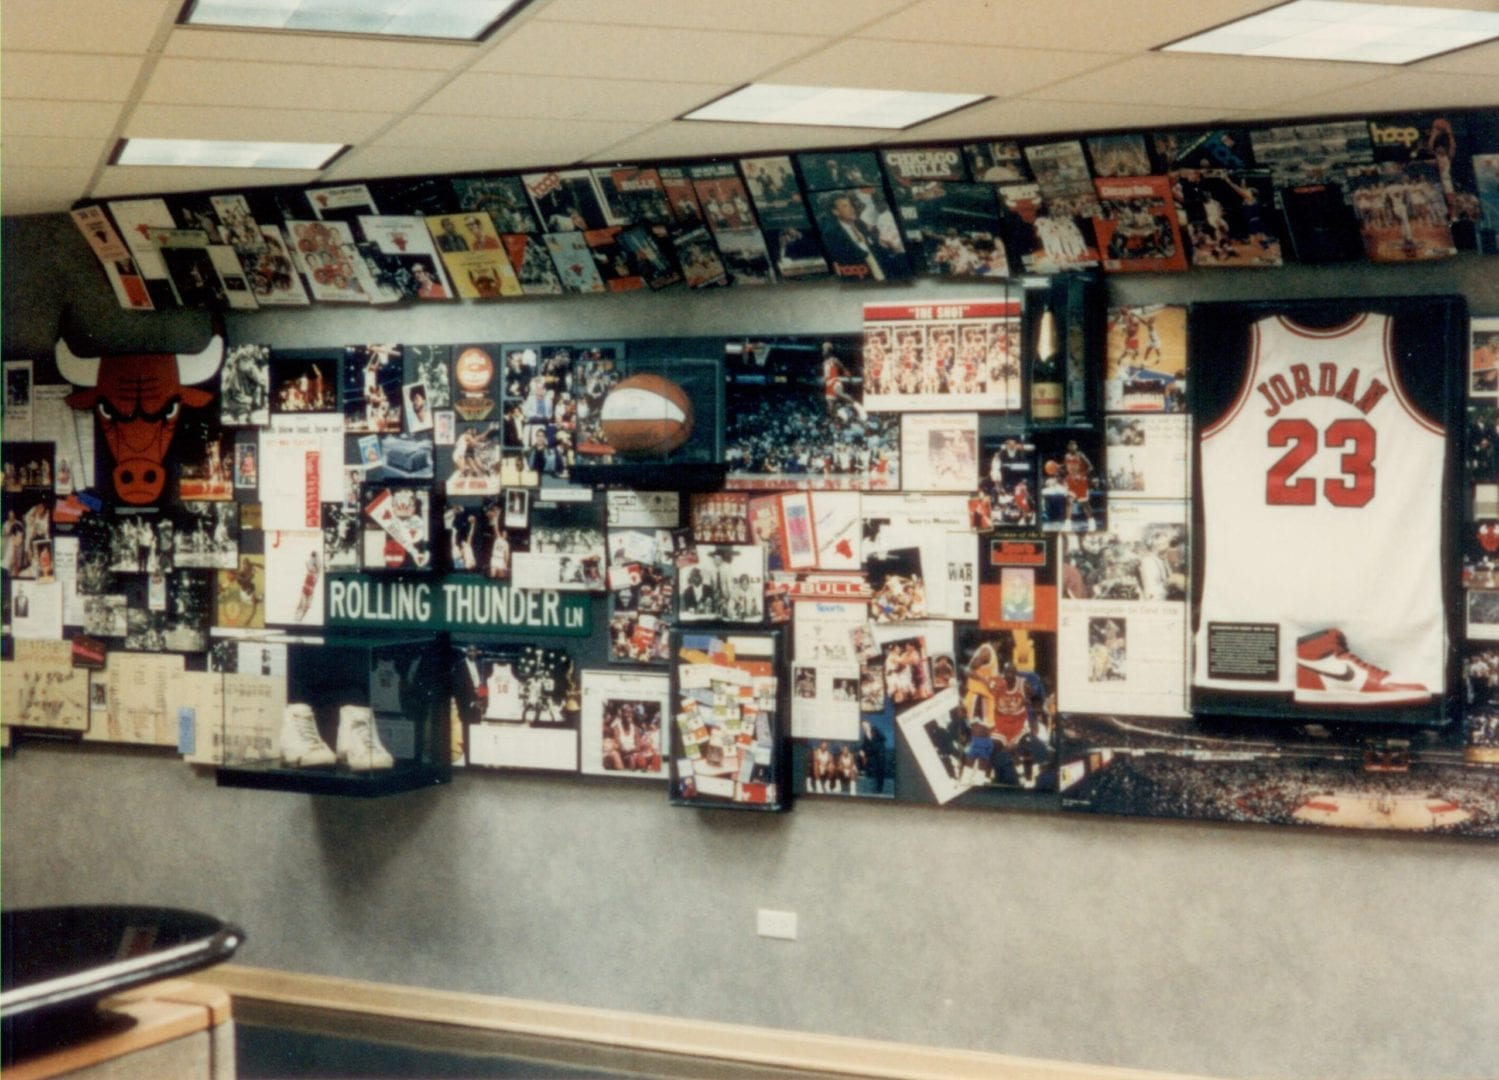 The Chicago Bulls front office lobby